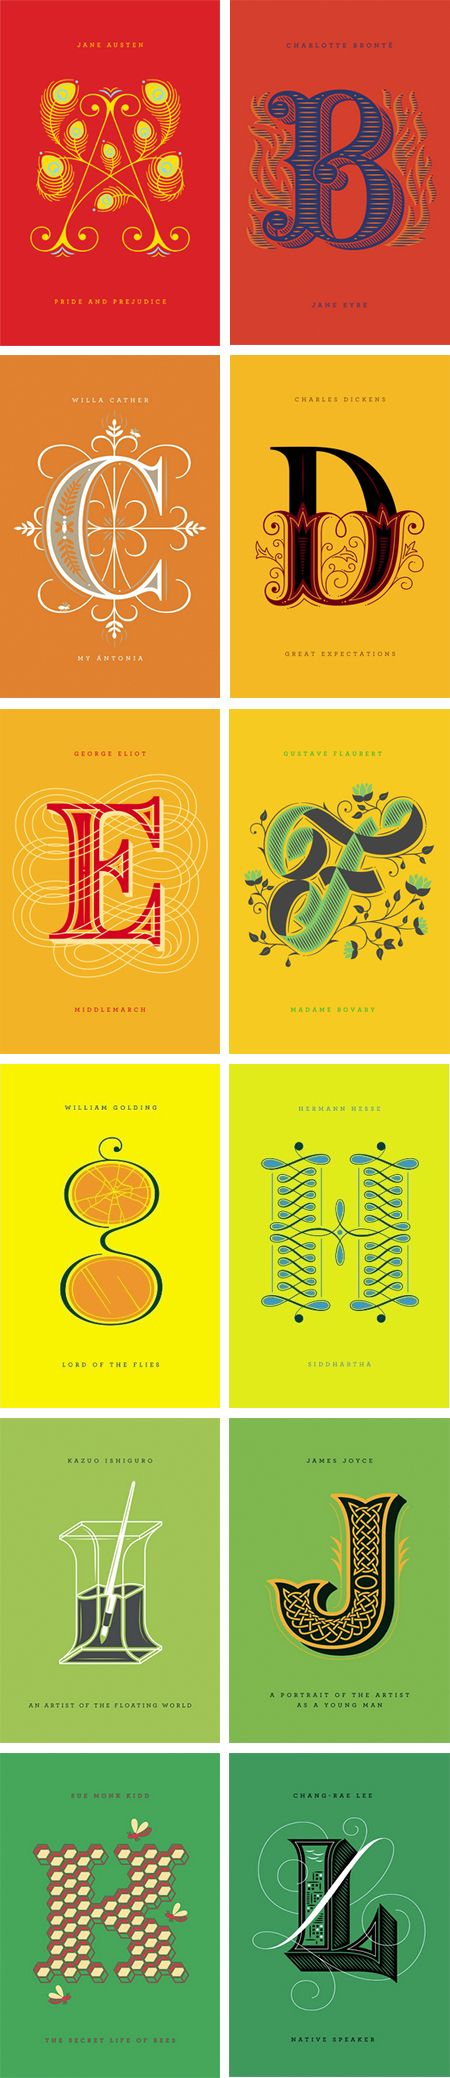 From Penguin's Drop Caps series of books http://www.penguin.com/static/pages/classics/penguindropcaps.php